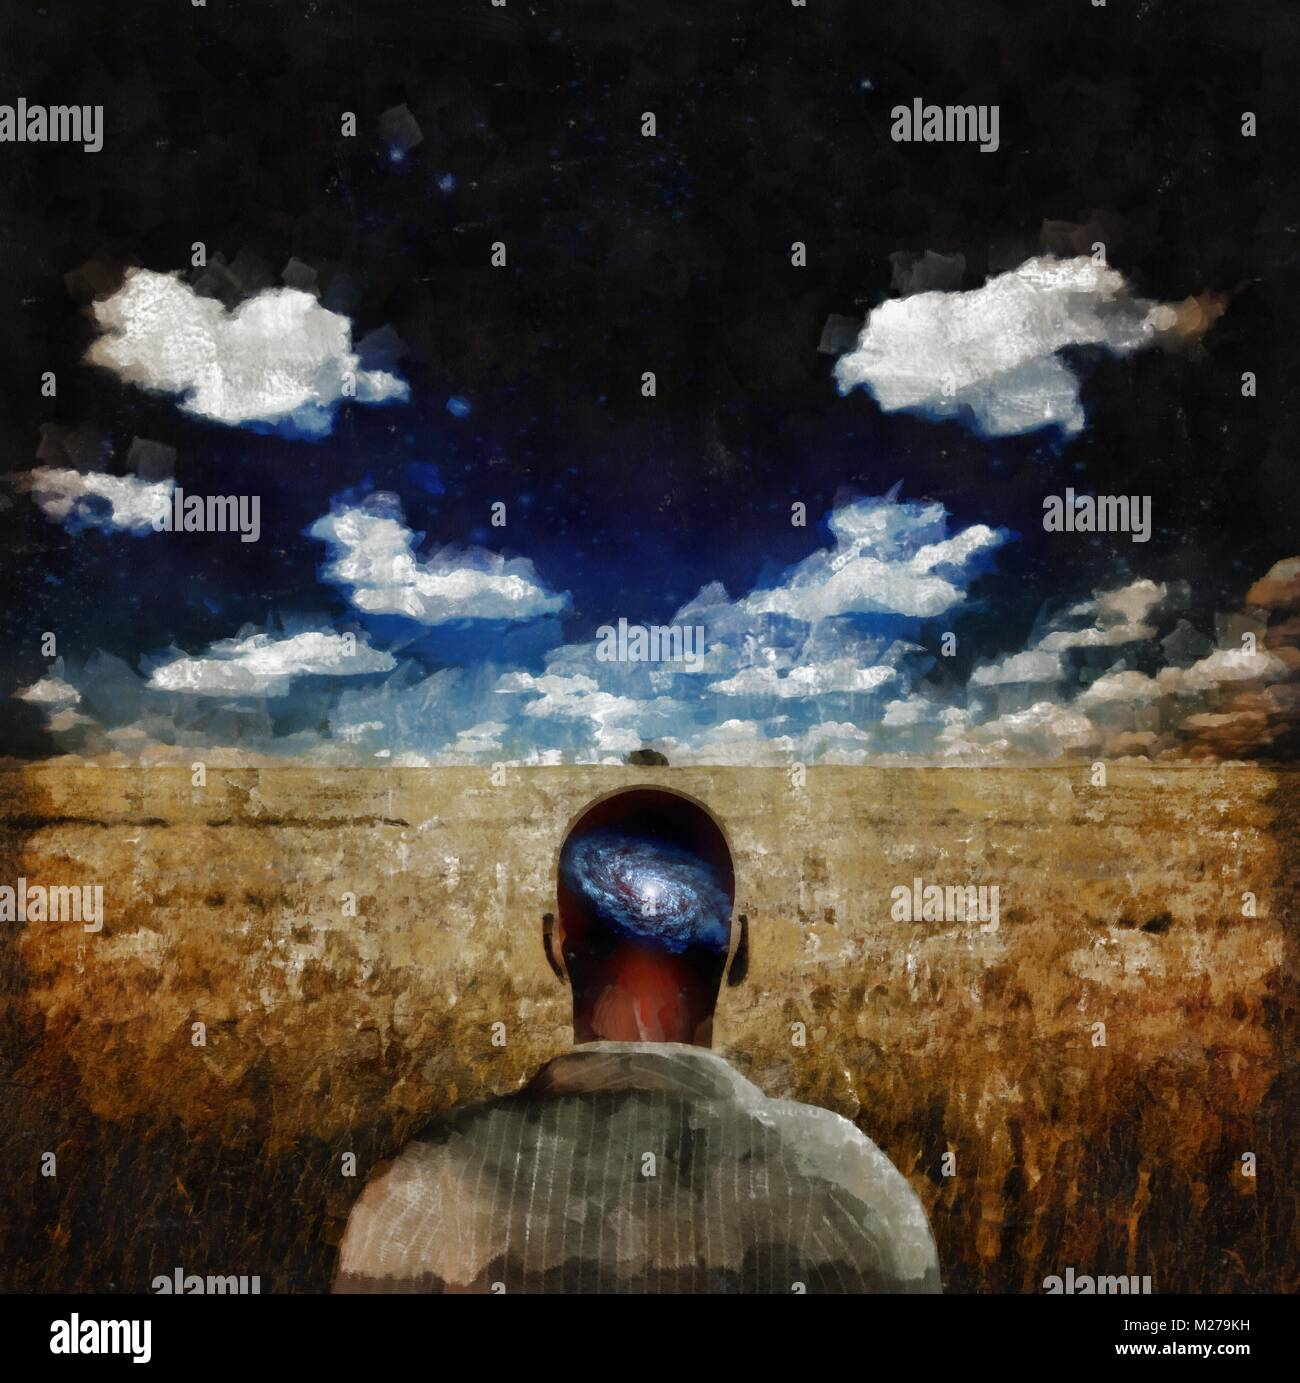 Surreal painting. Man with galaxy inside of his head stands in the field of wheat. - Stock Image